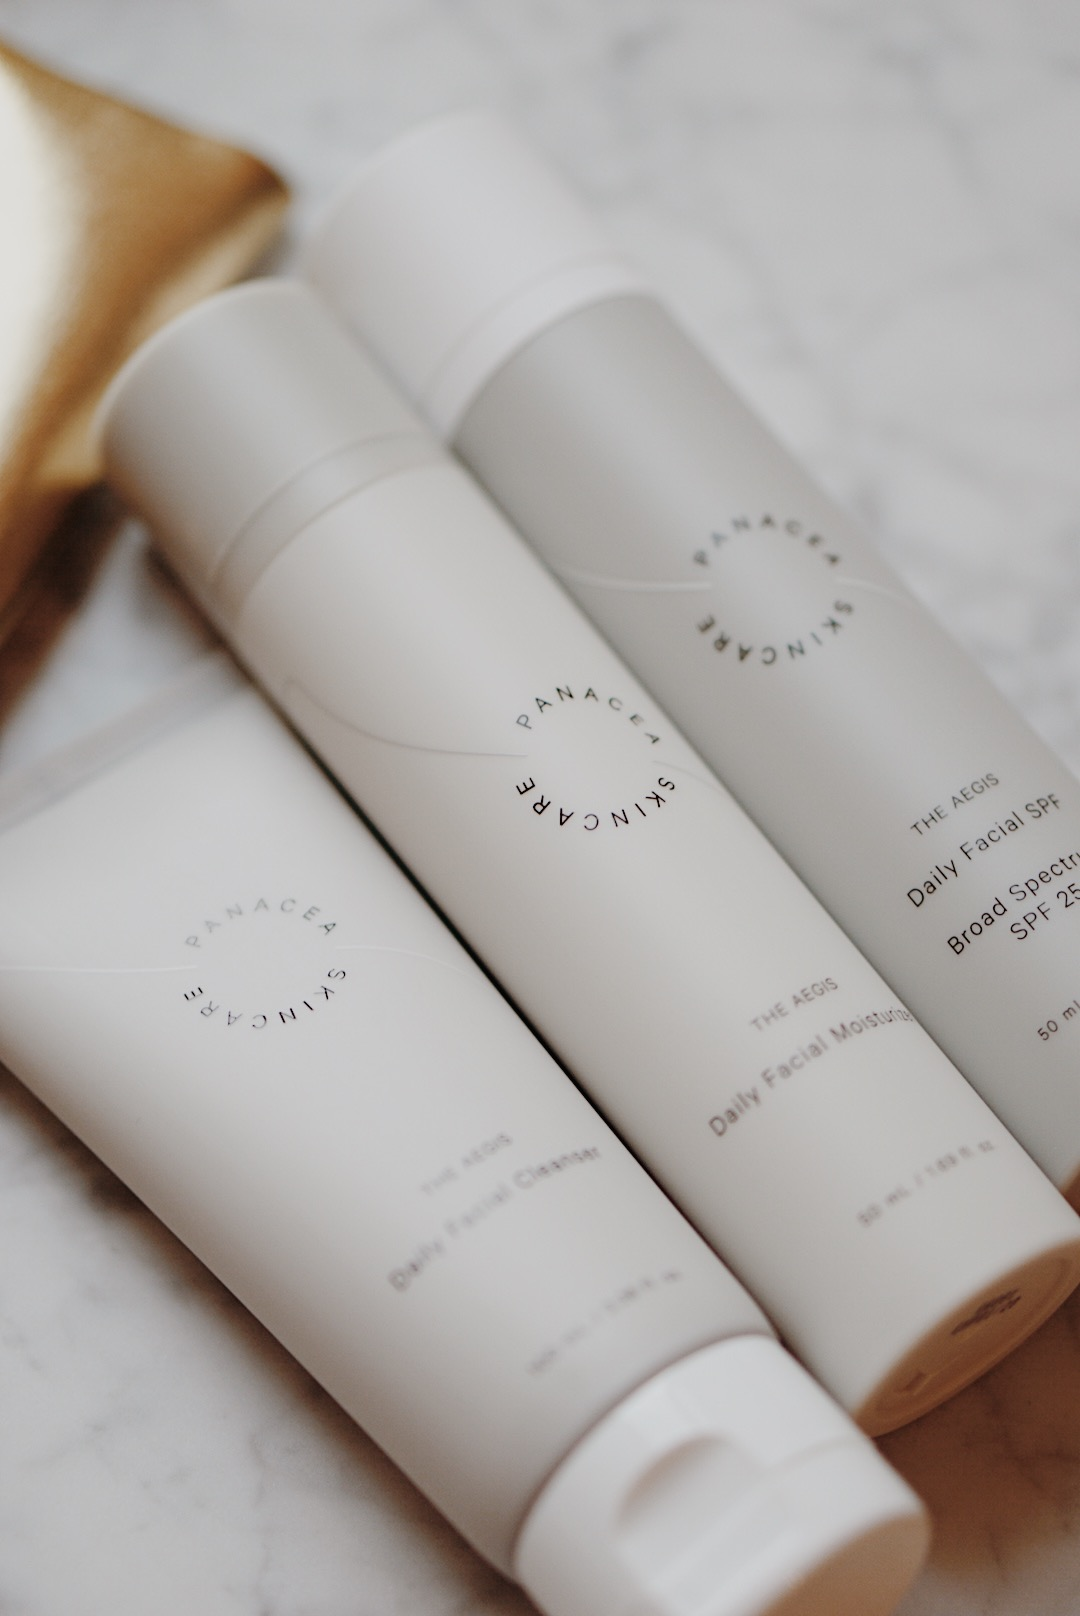 Products I'm Currently Testing - Skincare - CHY - Panacea Skincare